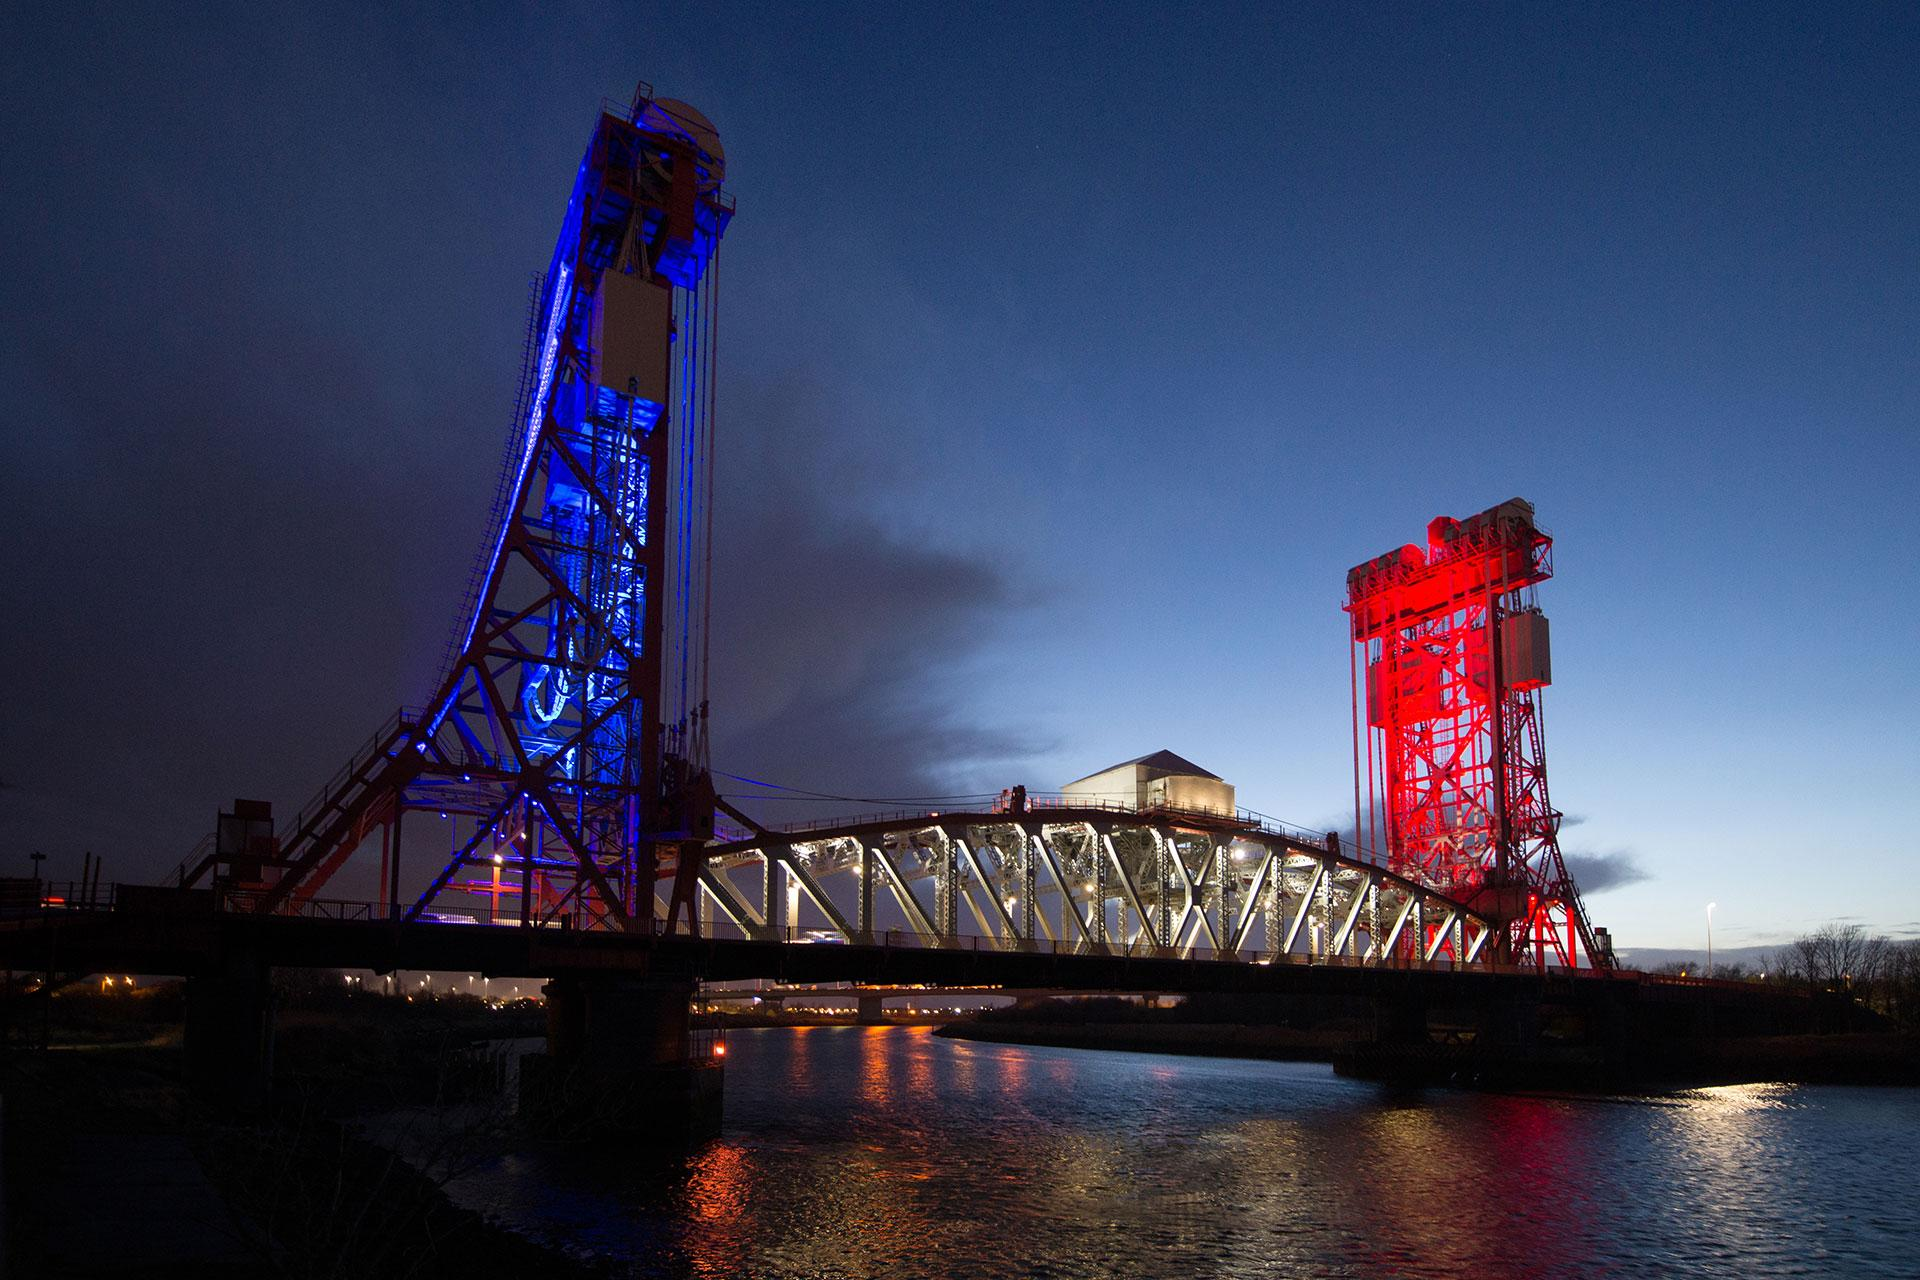 SCULP floodlights illuminate Tees Newport Bridge to create an iconic nocturnal landmark